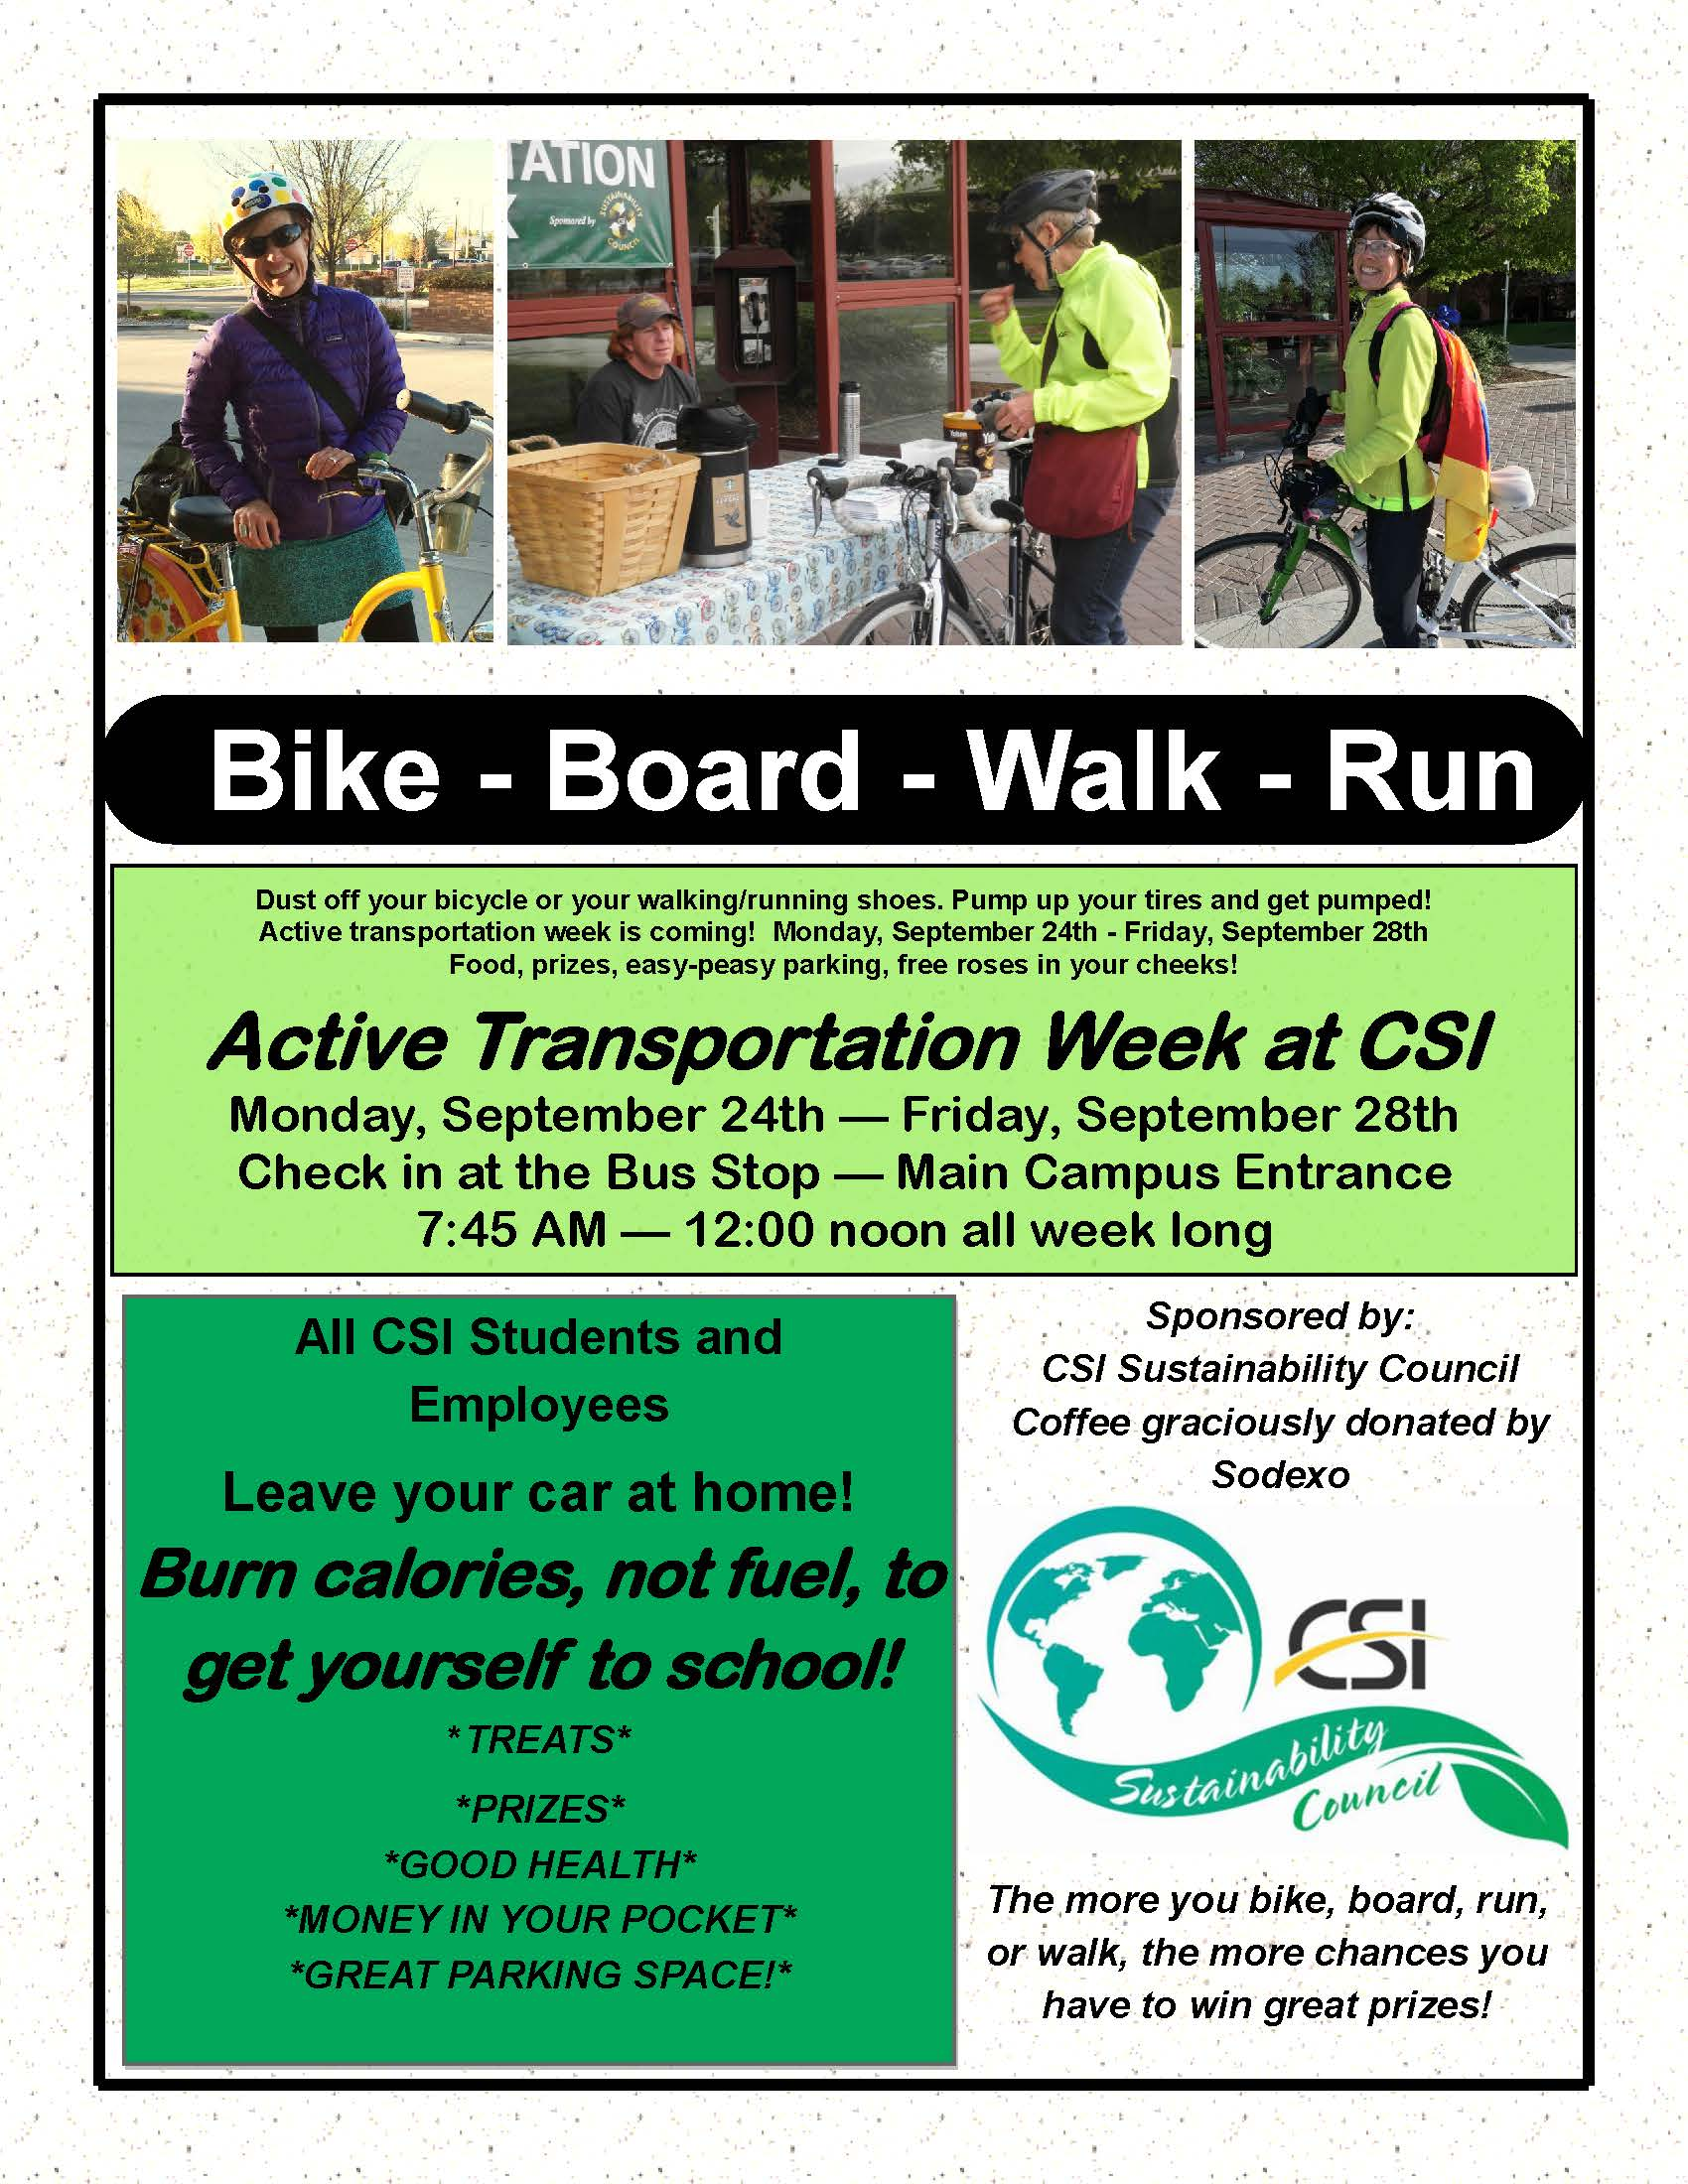 Active Transportation Week